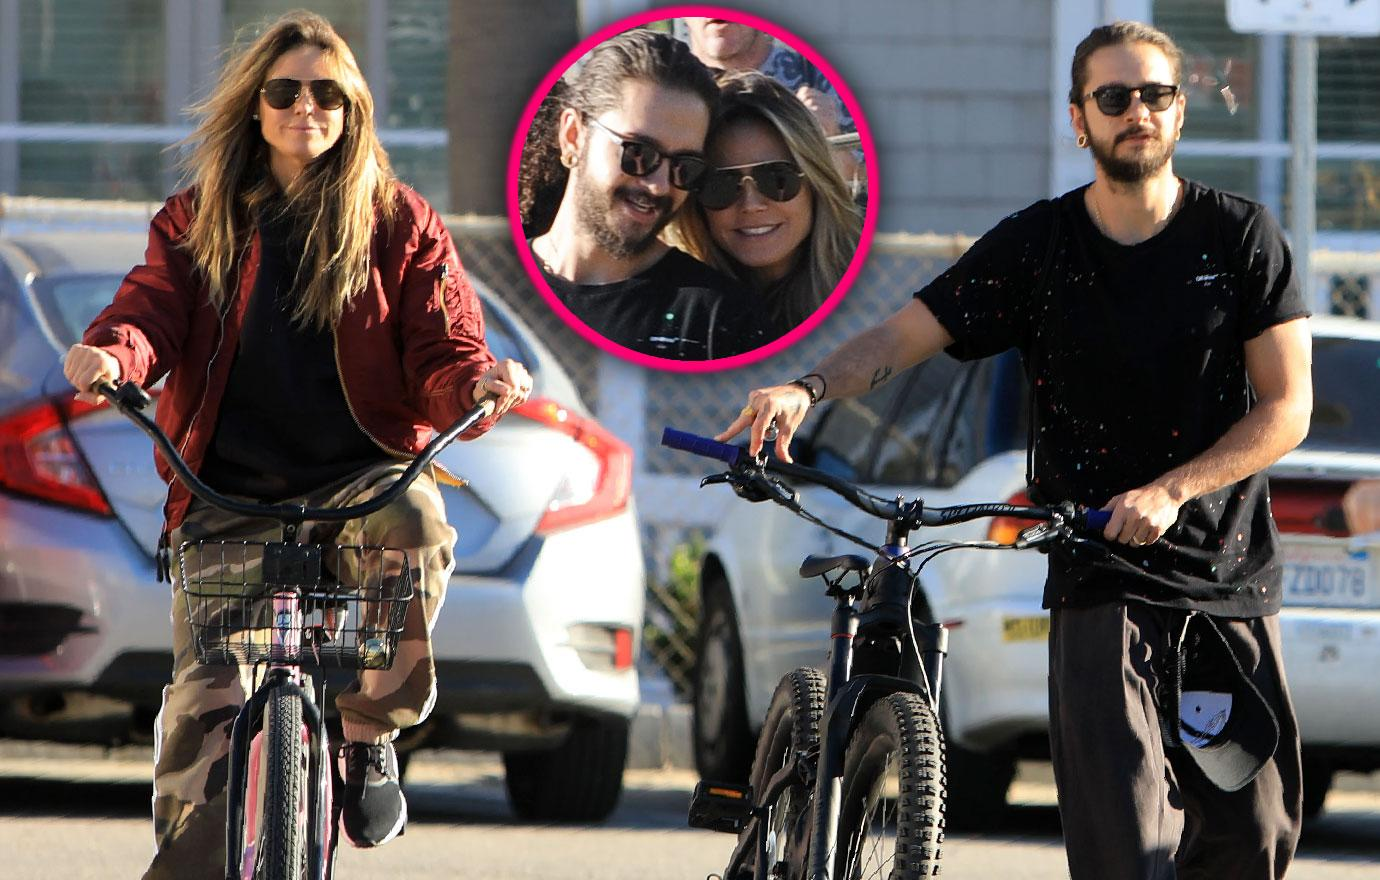 Heidi Klum And Tom Kaulitz Hang Out With Kids After Engagement